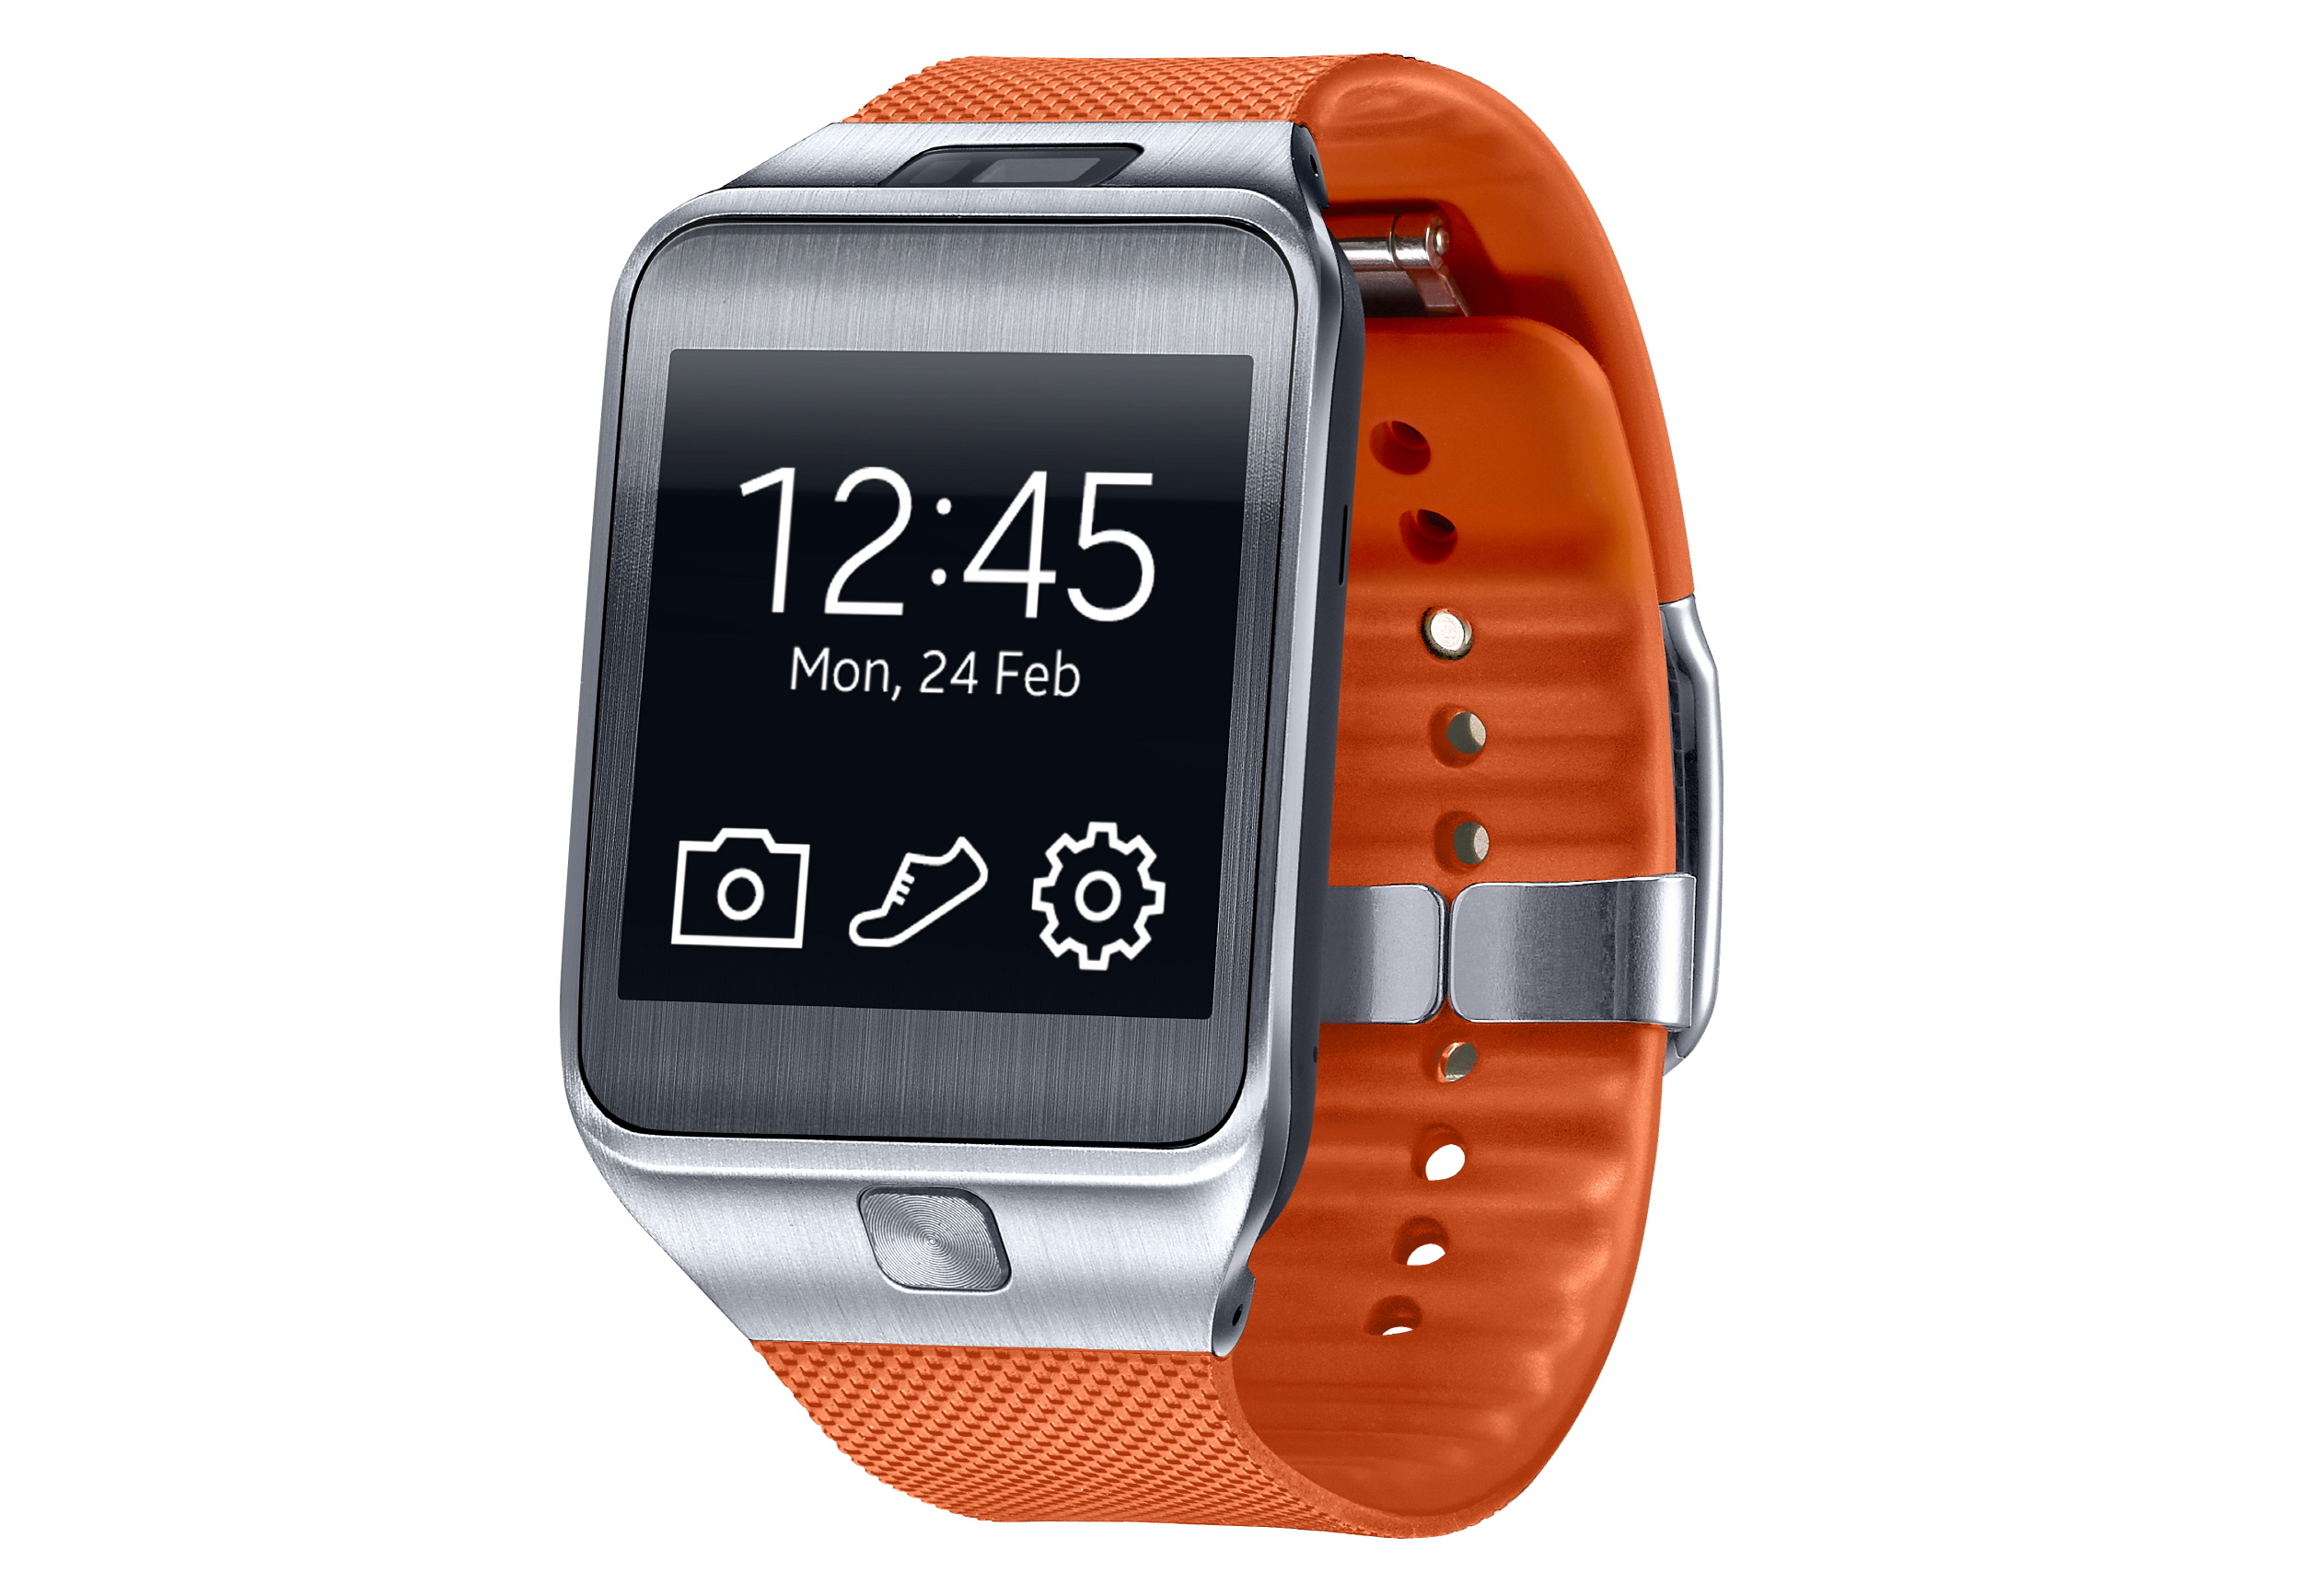 watches samsung not market moto smartwatches time and started we it by more is choices october best an ah edition dominated guide up buyers weighing whether our about any android smart just watch pebble wear s top